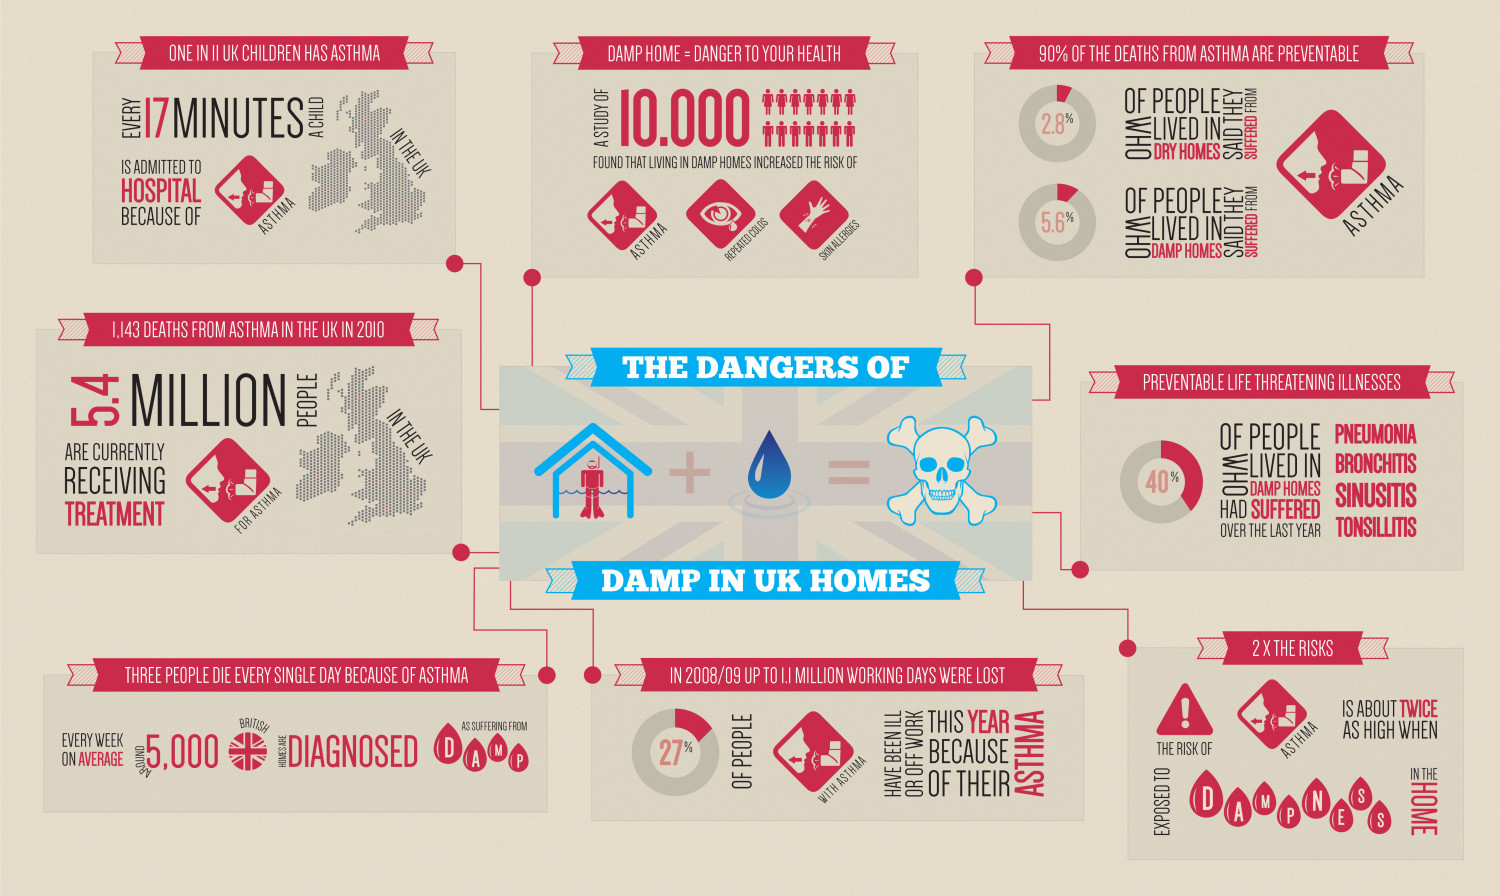 The Dangers of Damp in UK Homes Infographic